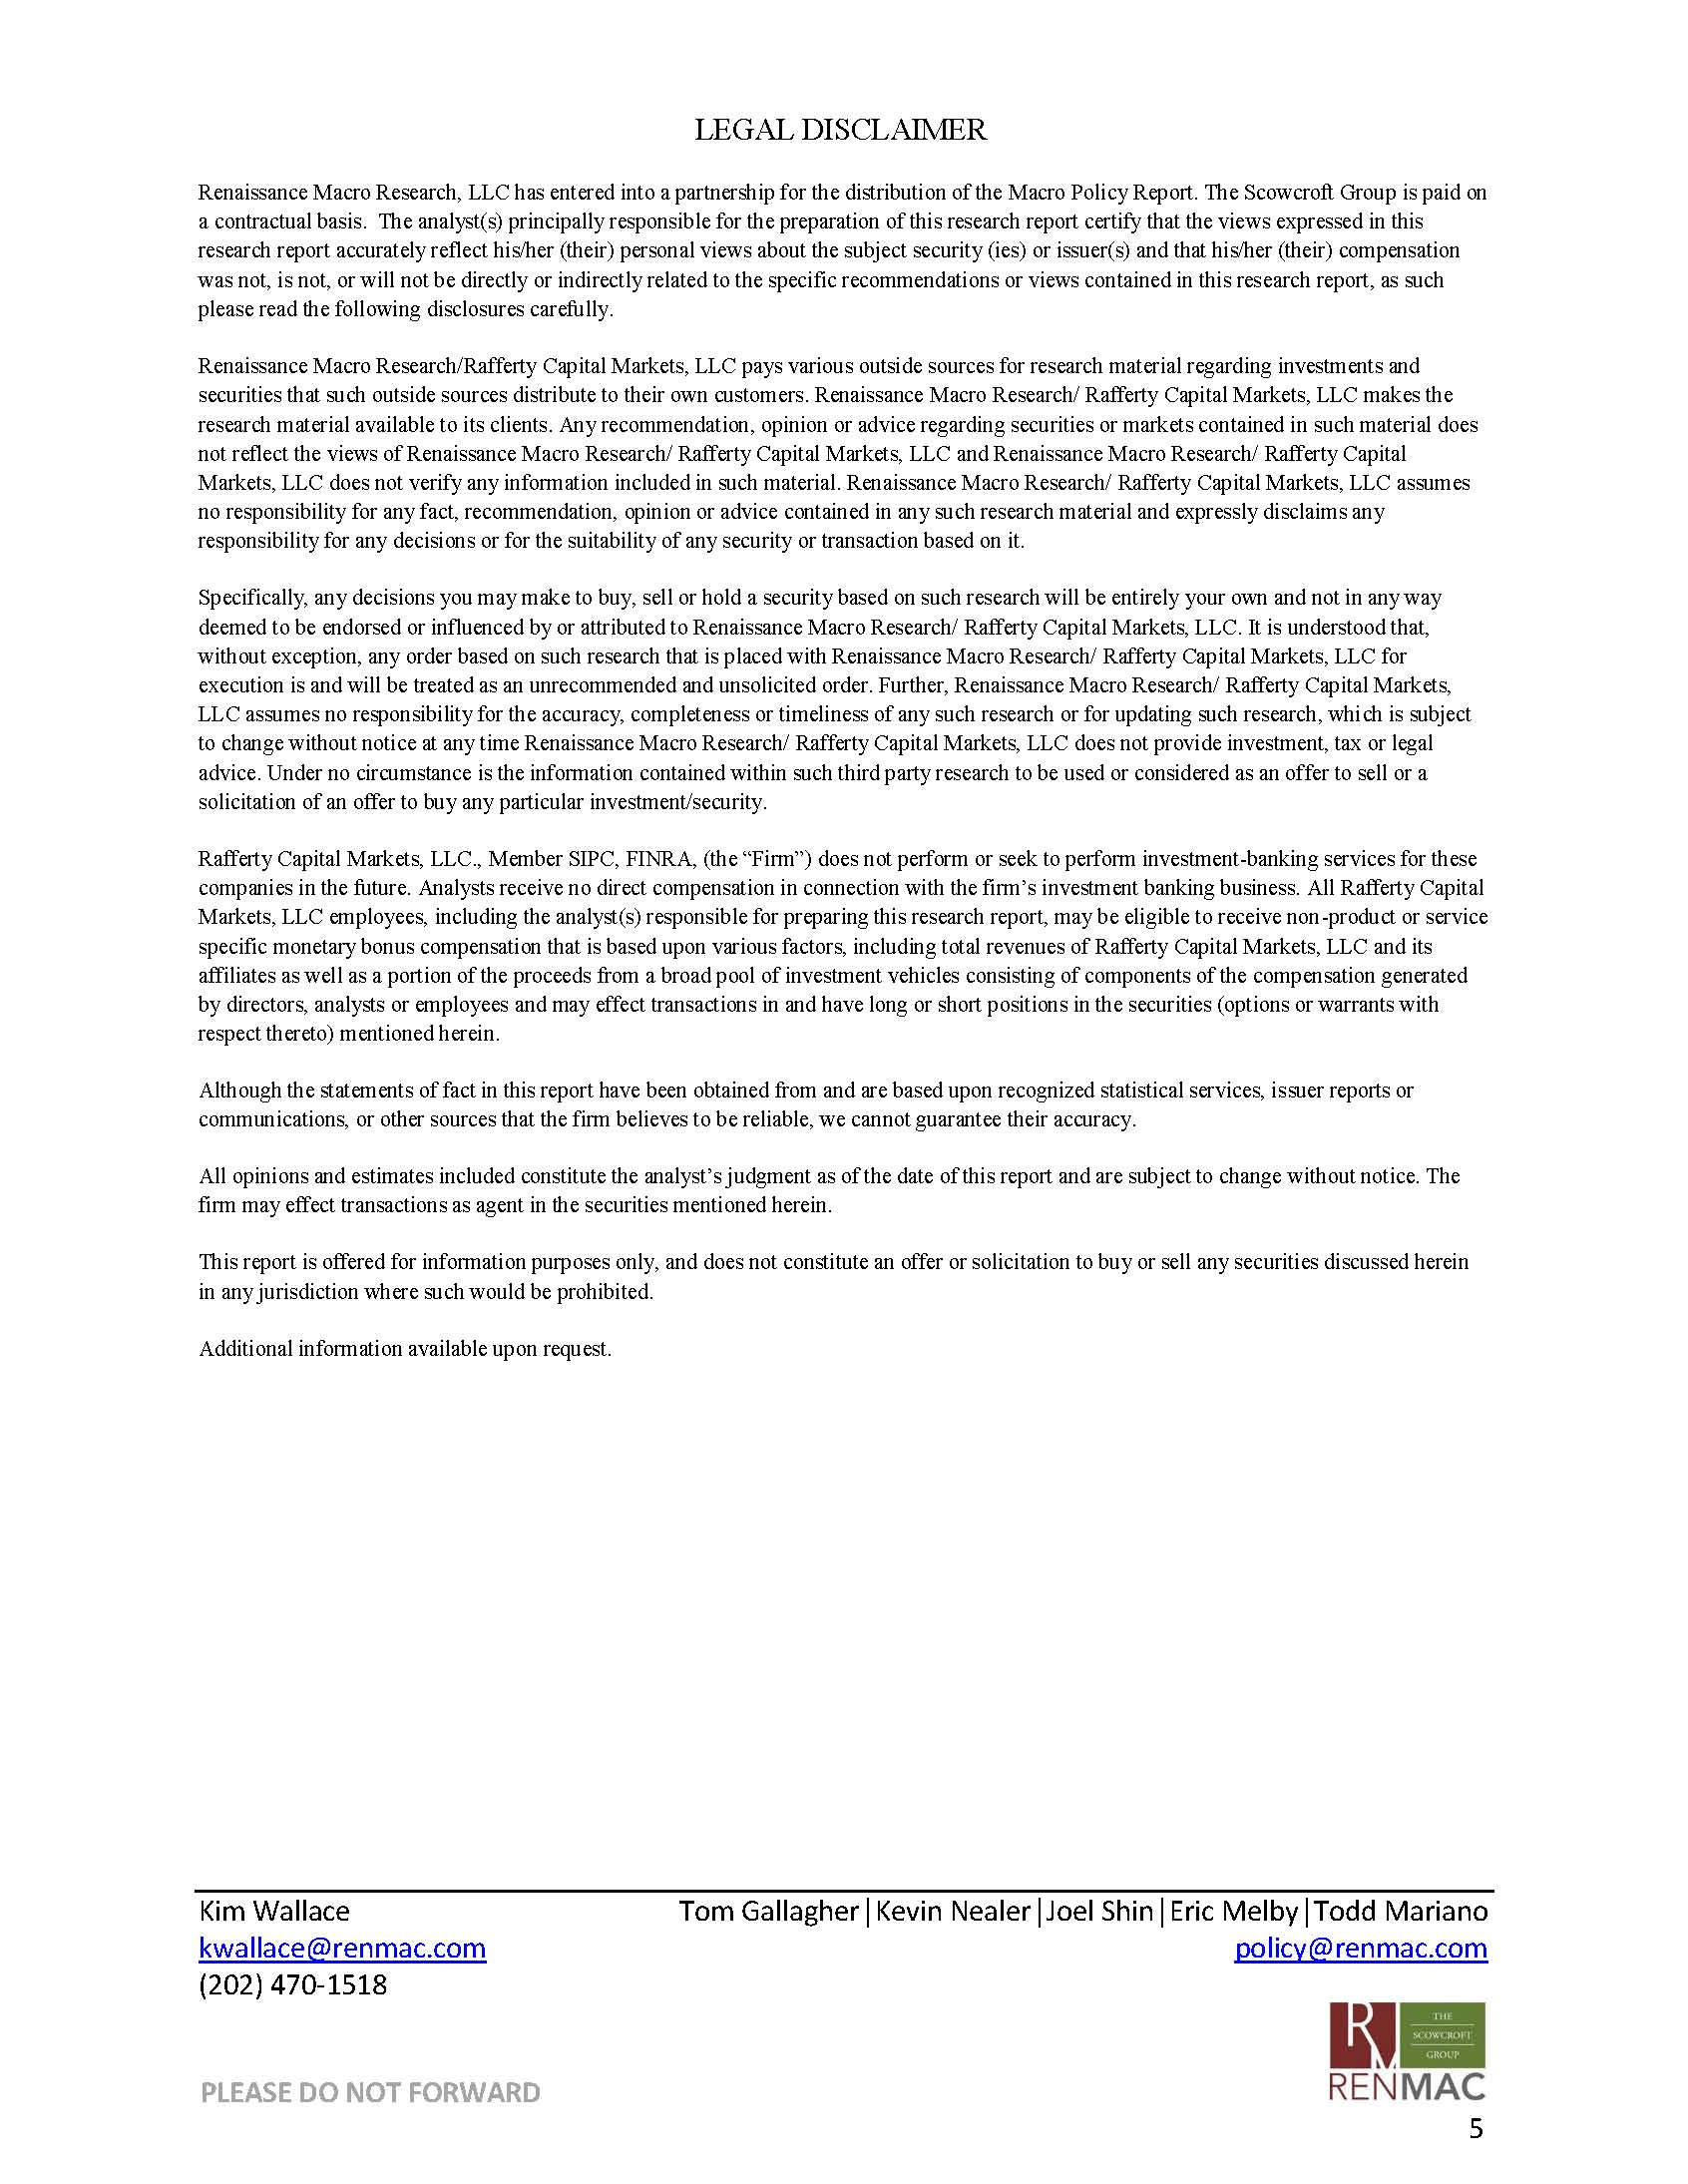 2012-12-11 WDPD_Page_5